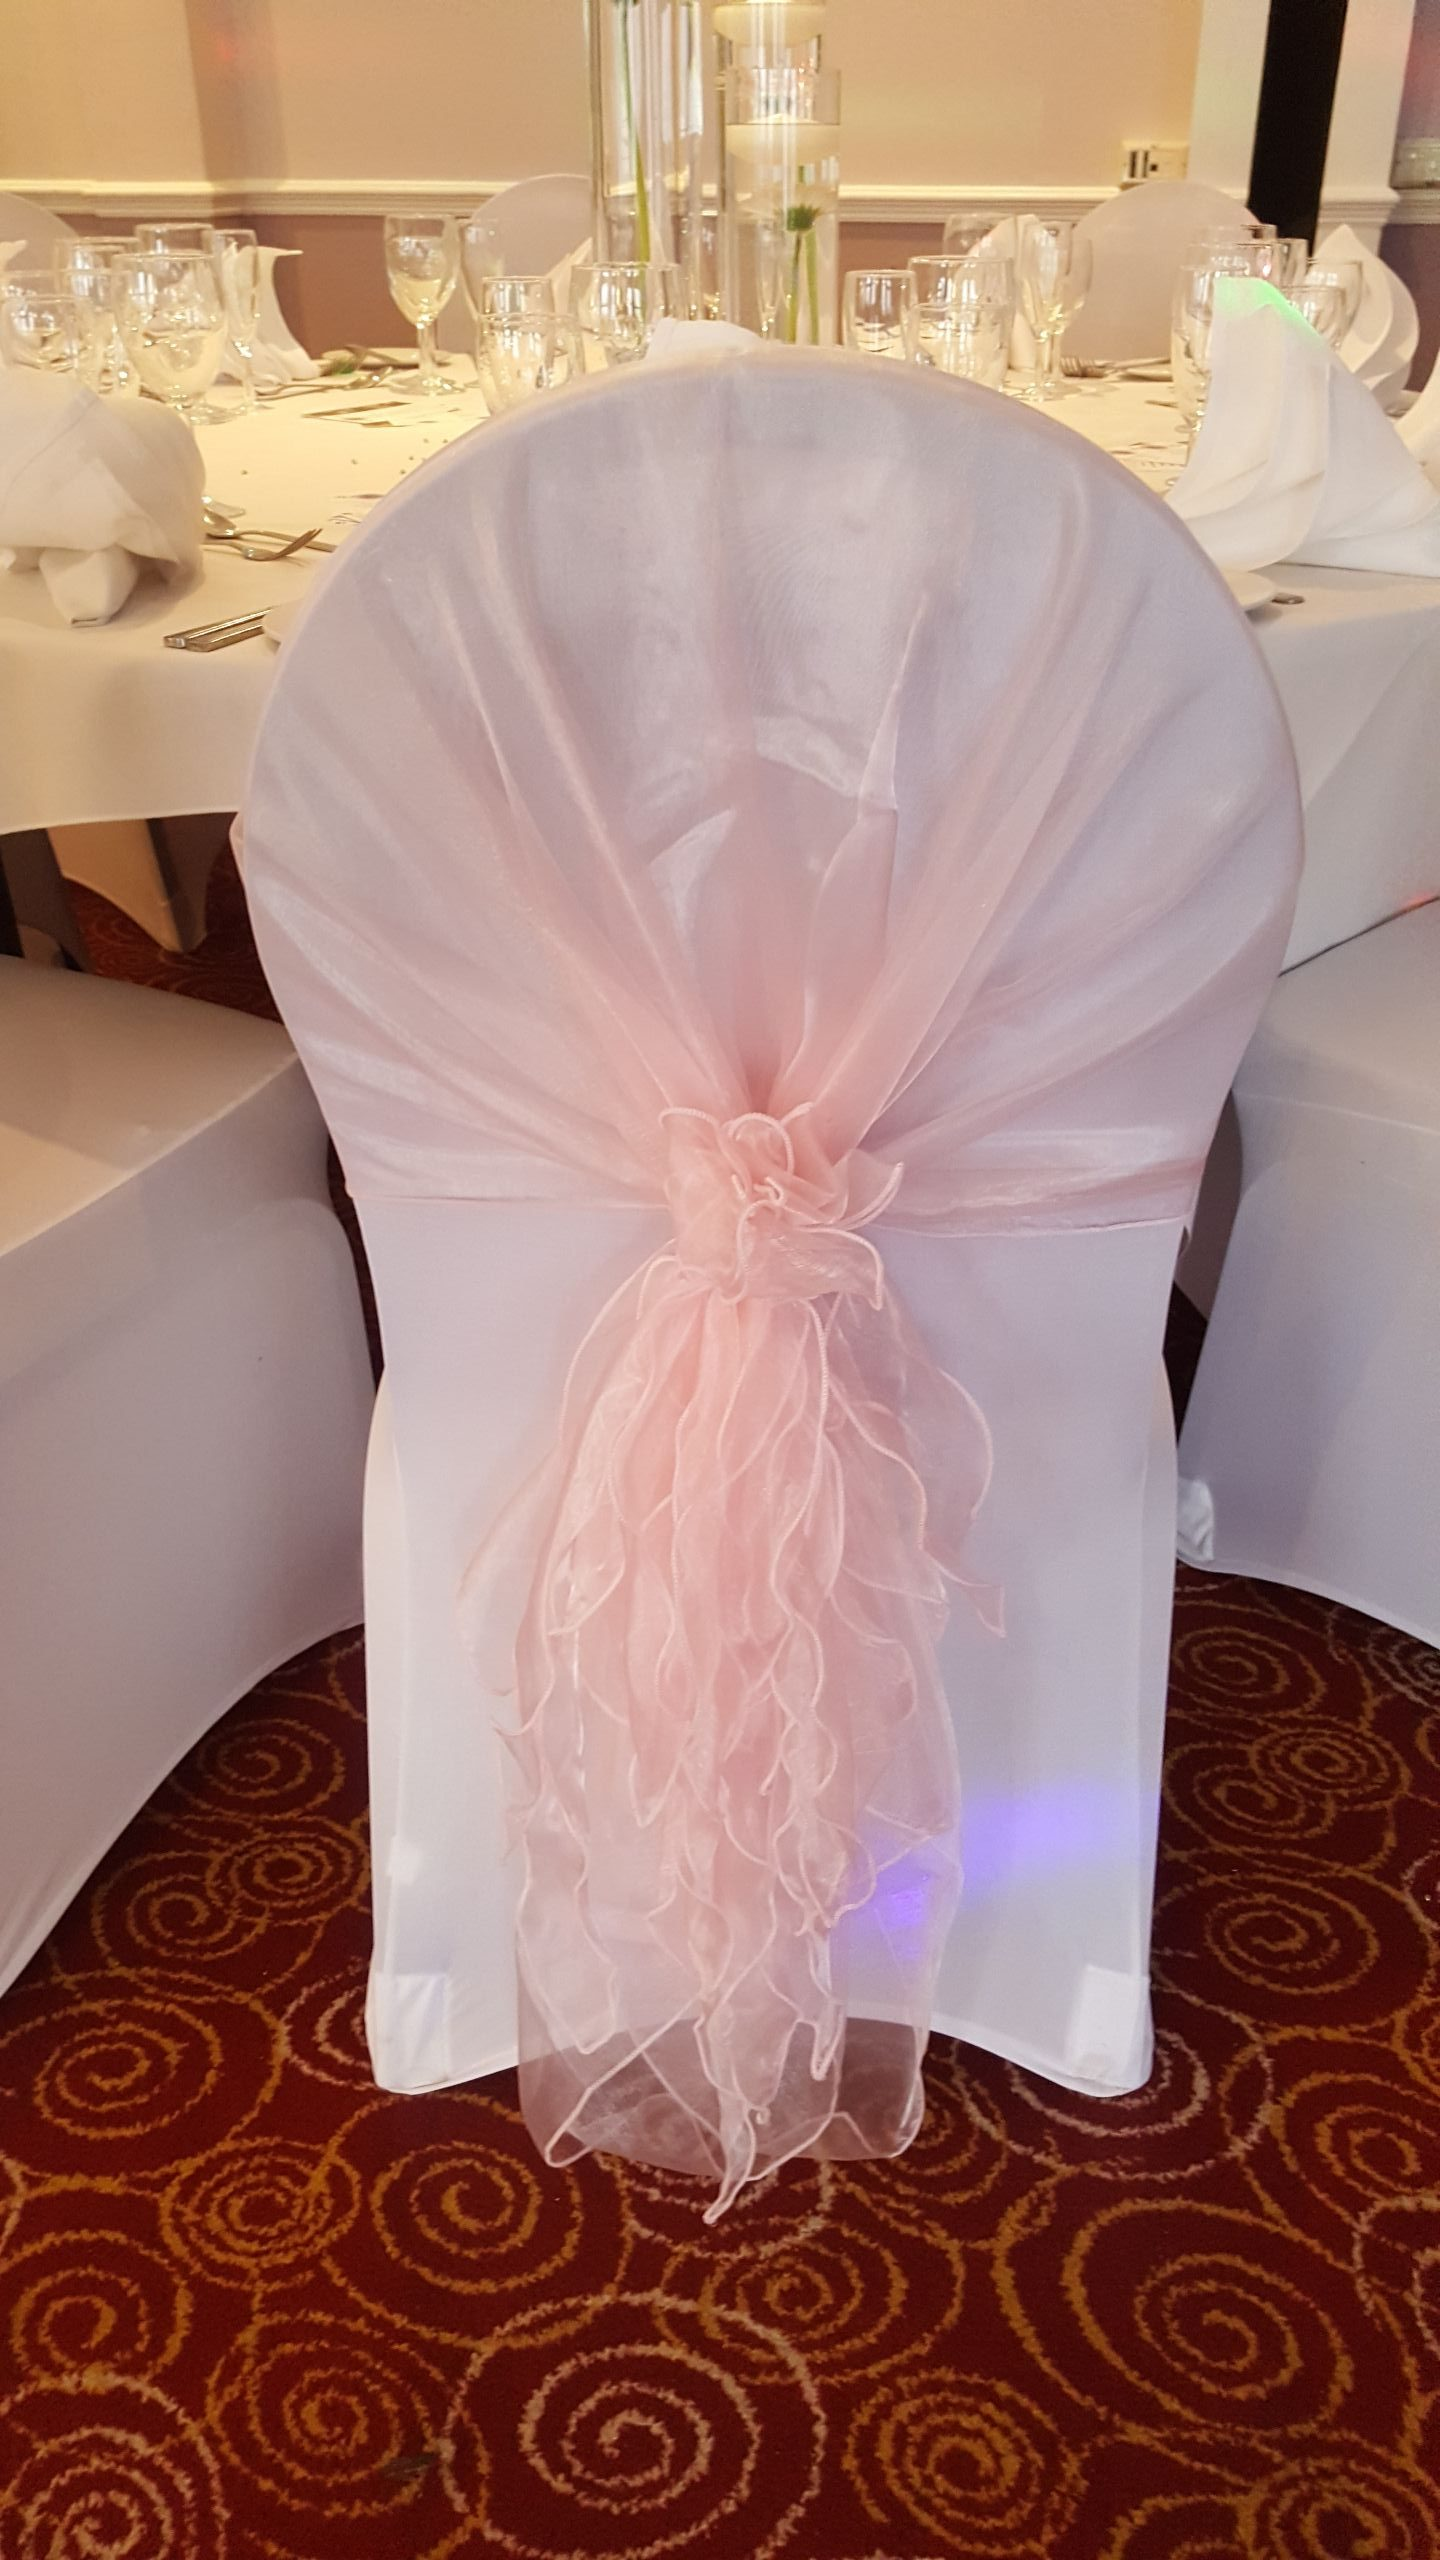 Pink Hood sash and White Lycra Chair covers